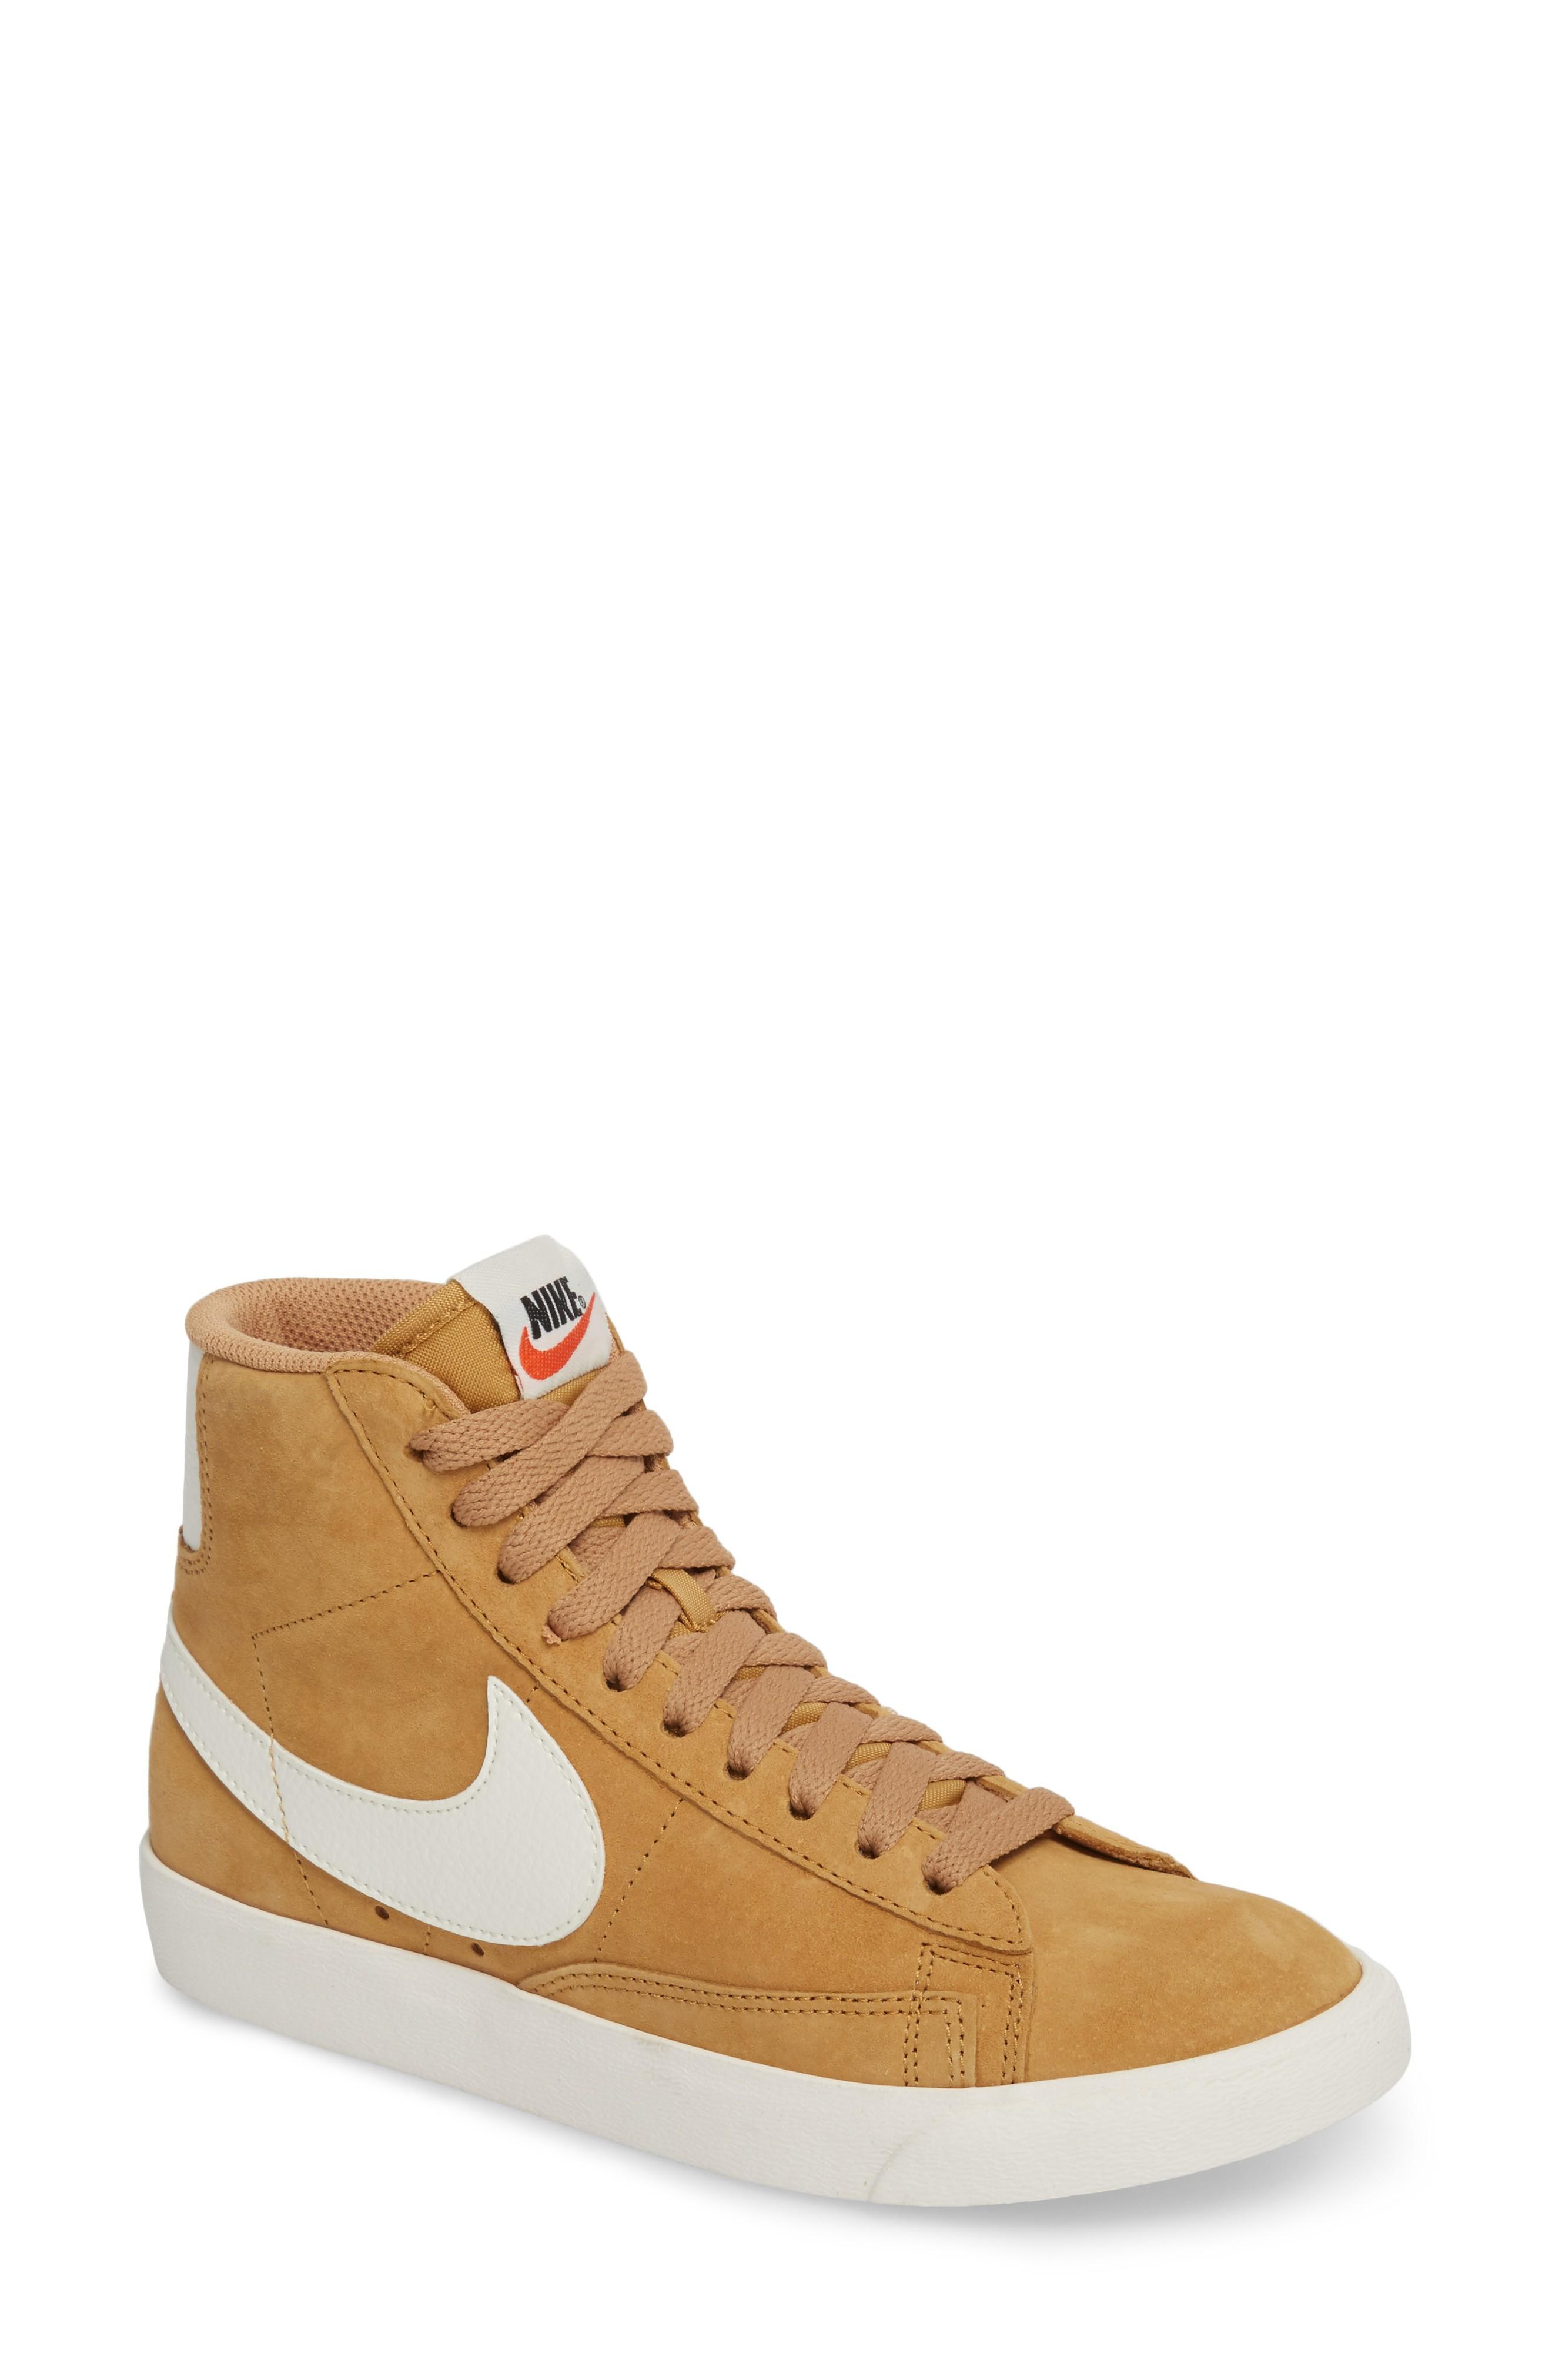 huge selection of 21cde 45416 Nike Blazer Mid Vintage Sneaker In Elemental Gold  Sail